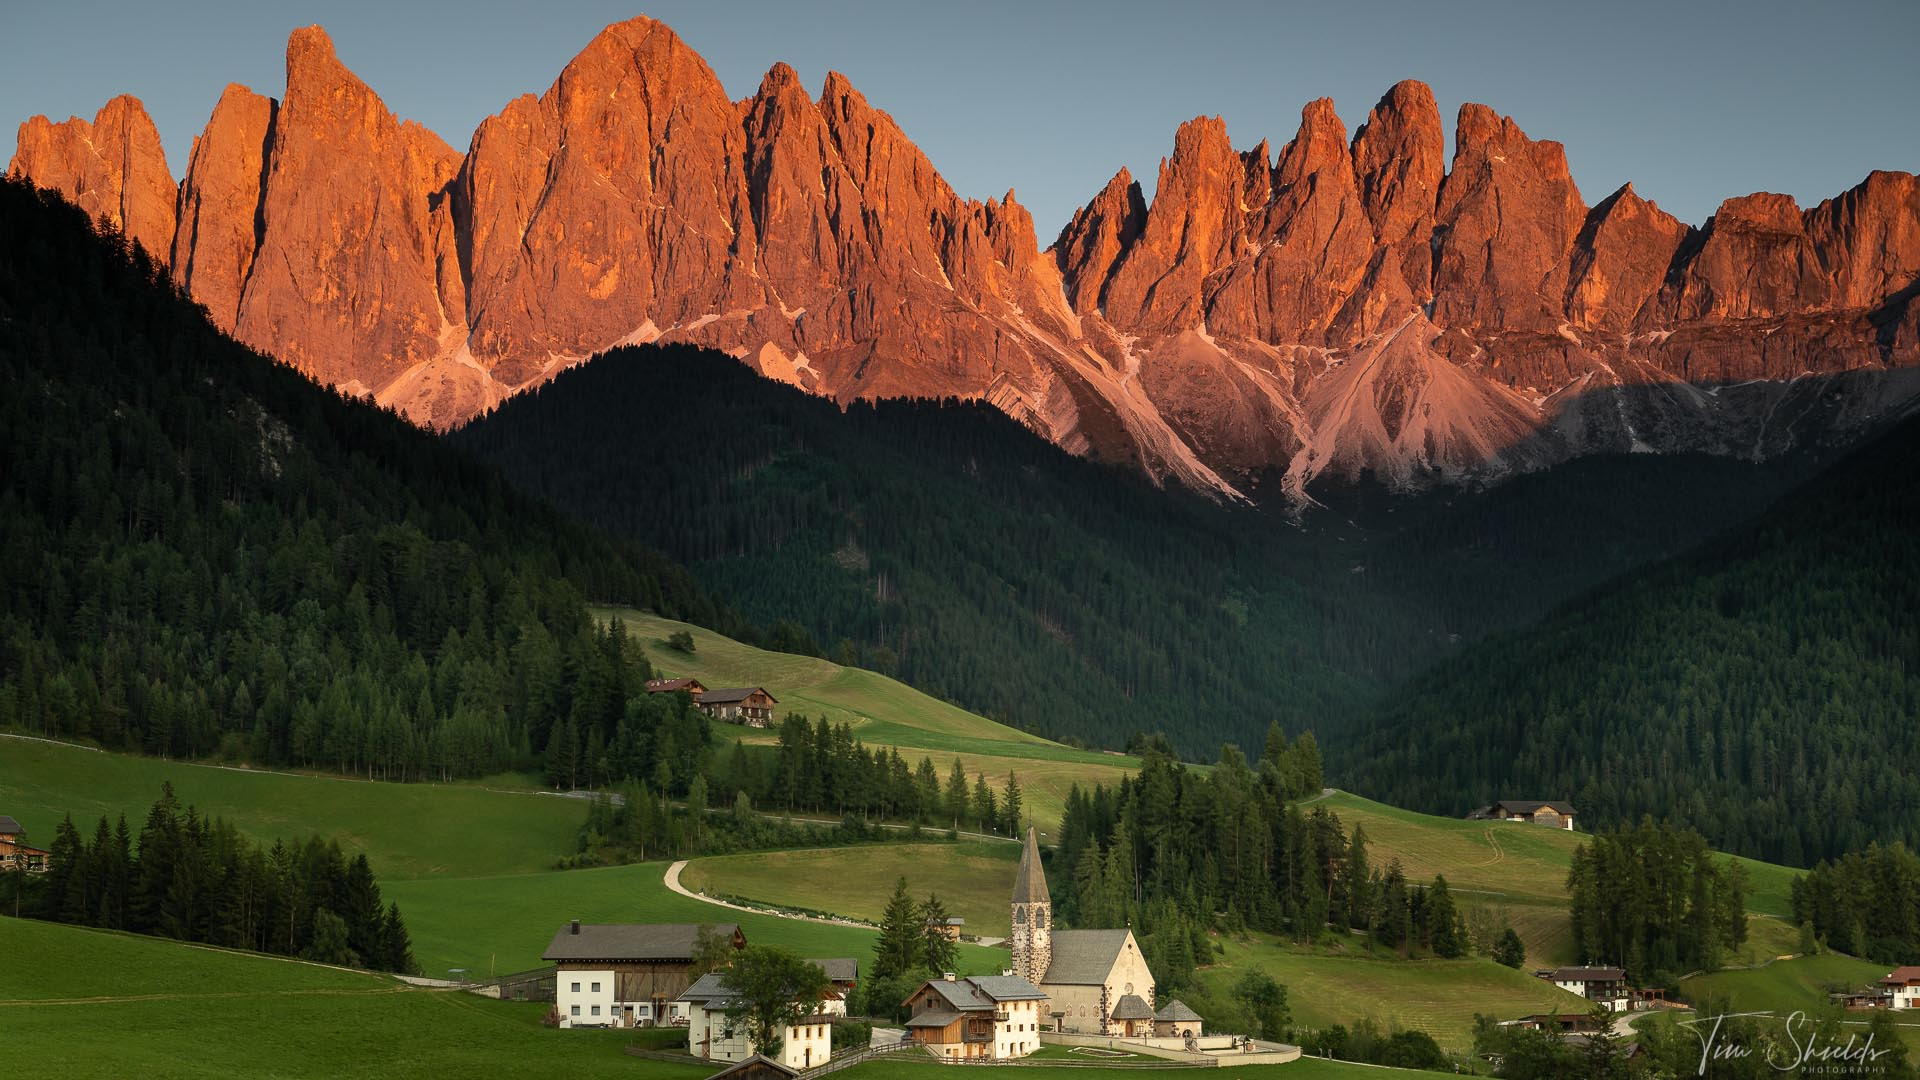 A photograph of a small village just below an iconic mountainous landscape